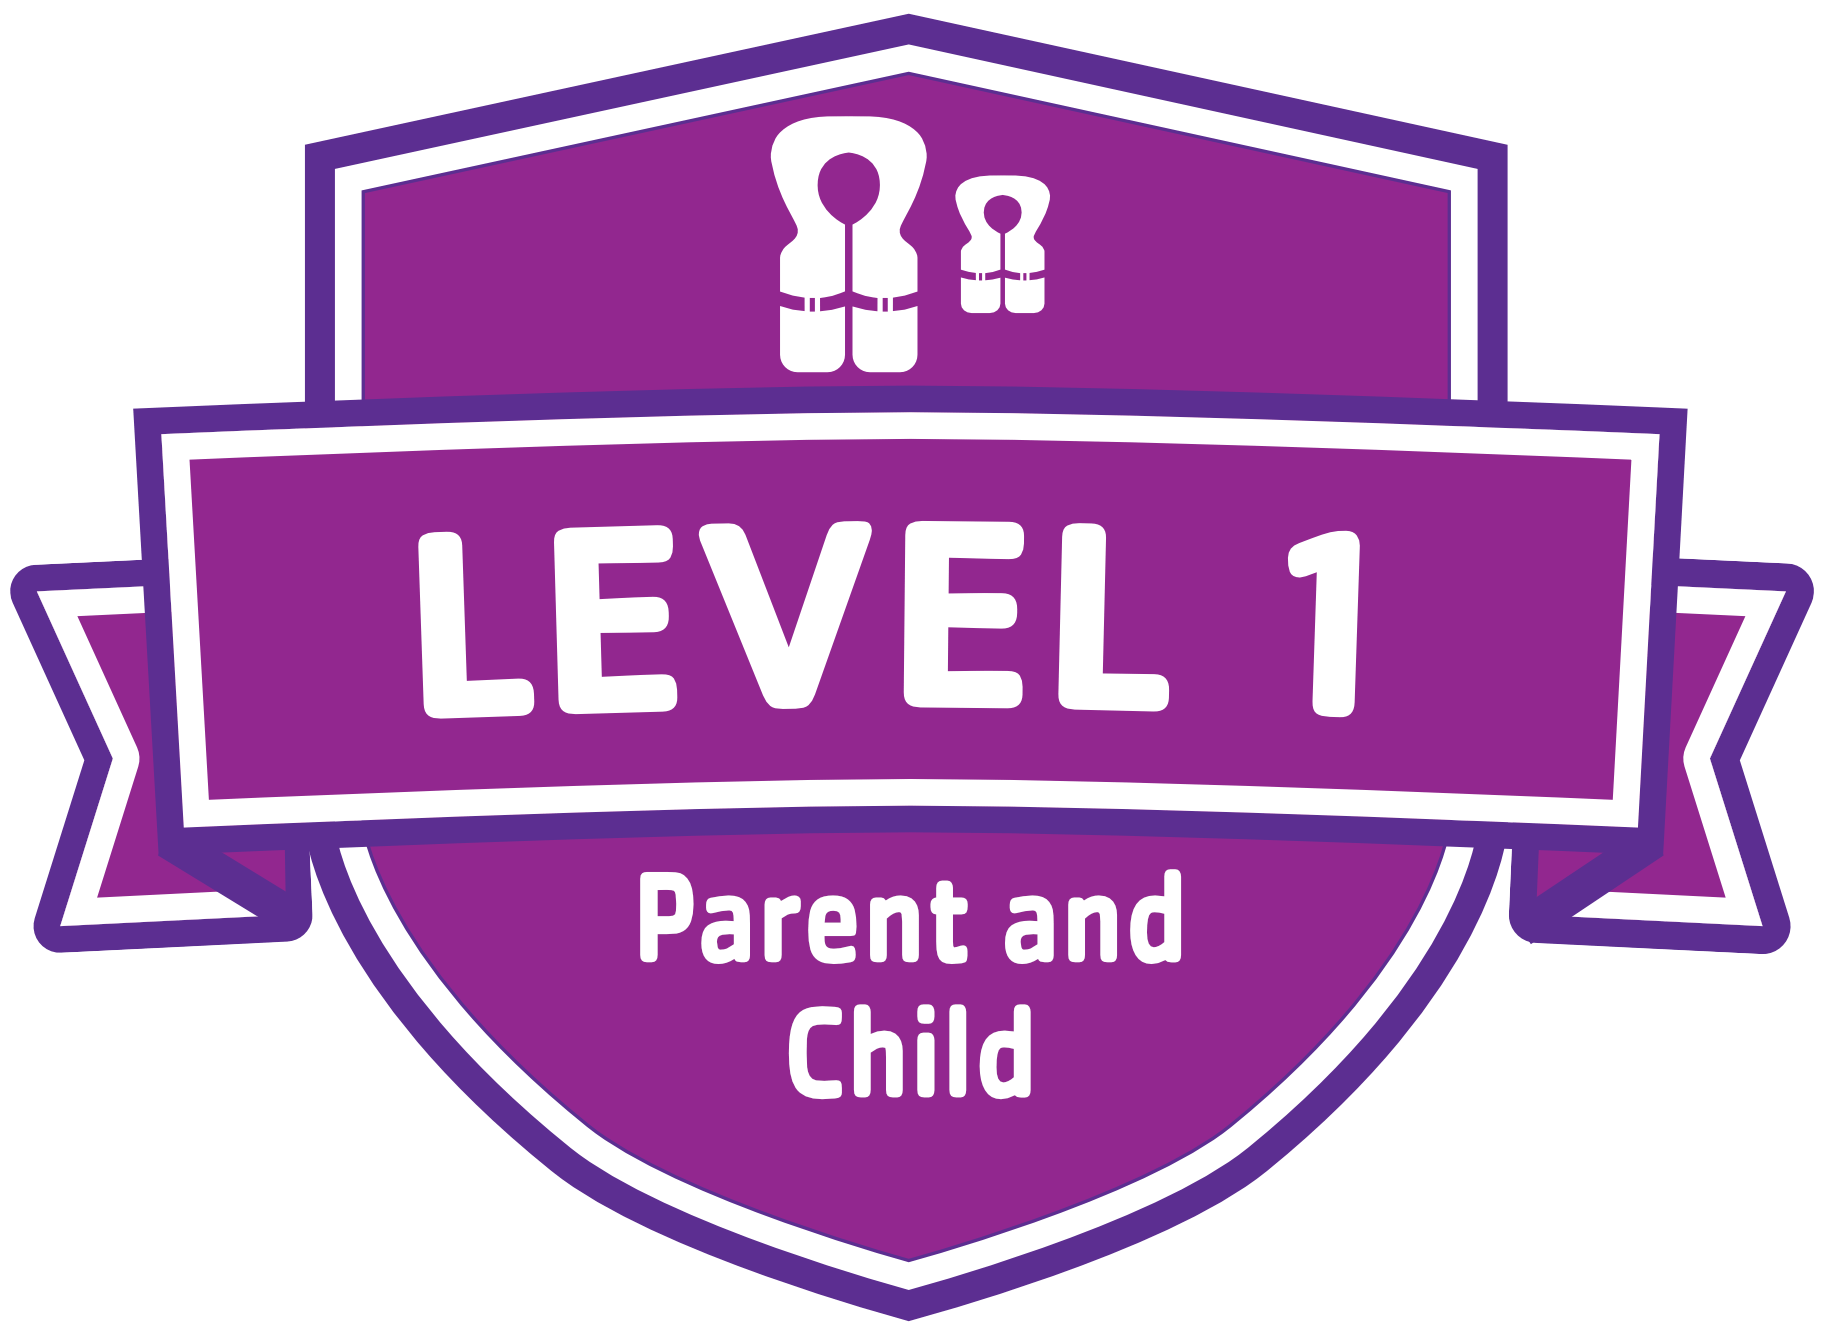 Parent Child Badge 1